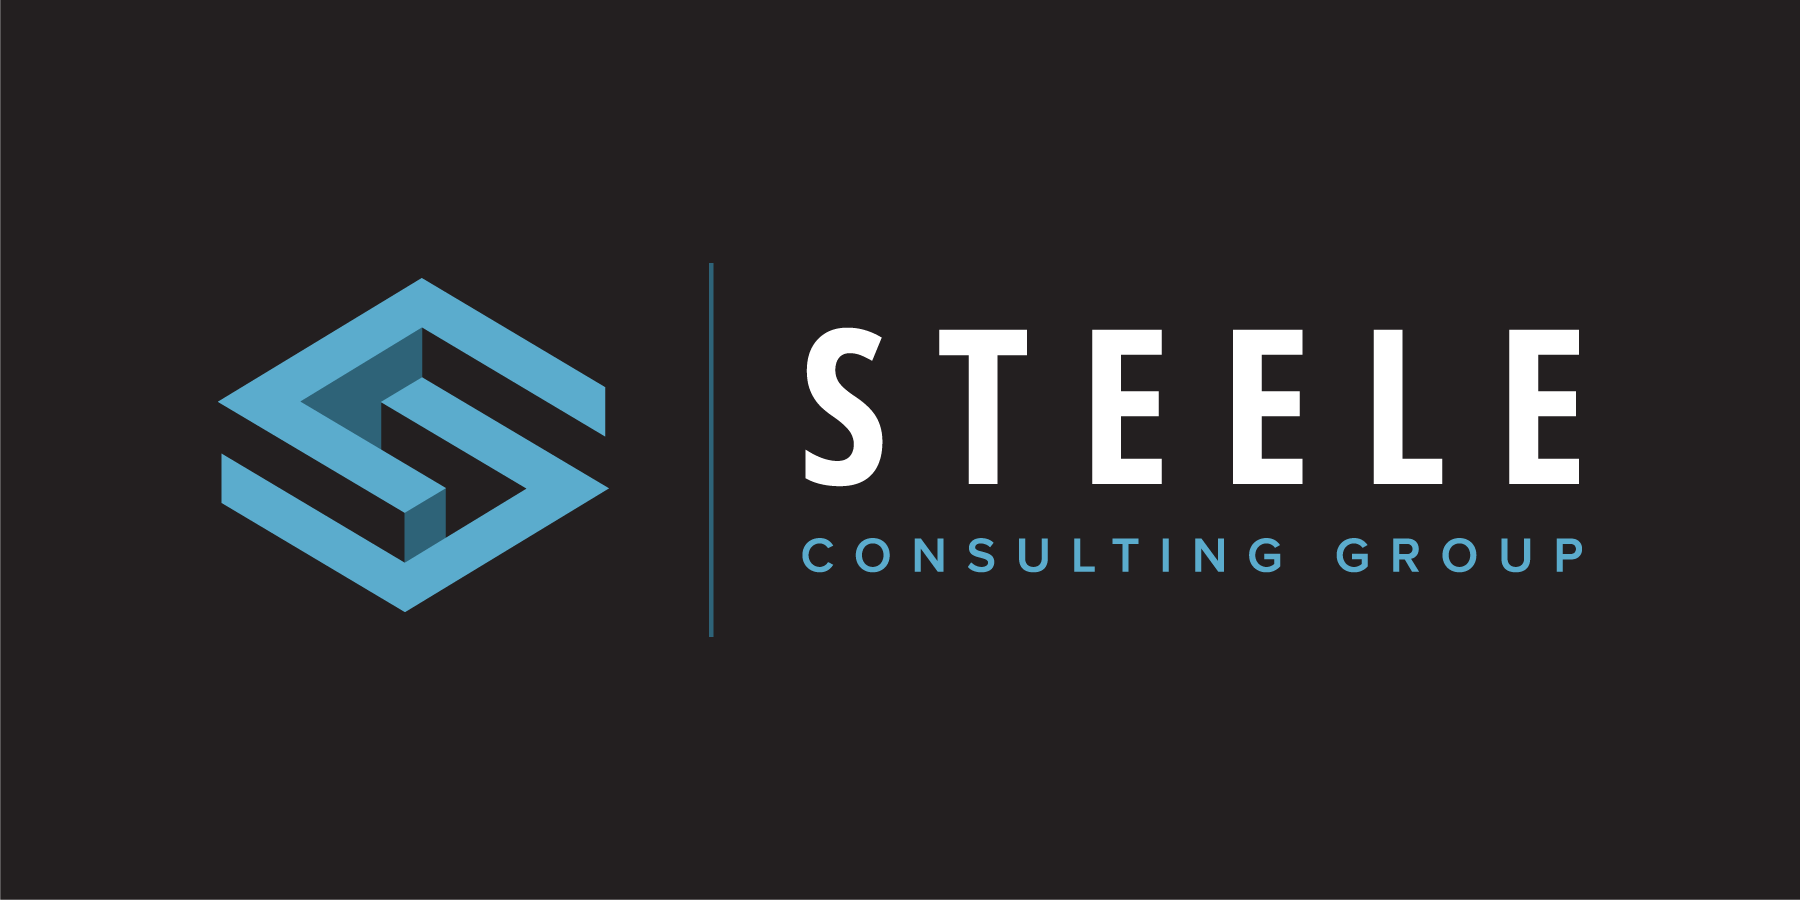 SteelConsultingGroup.png